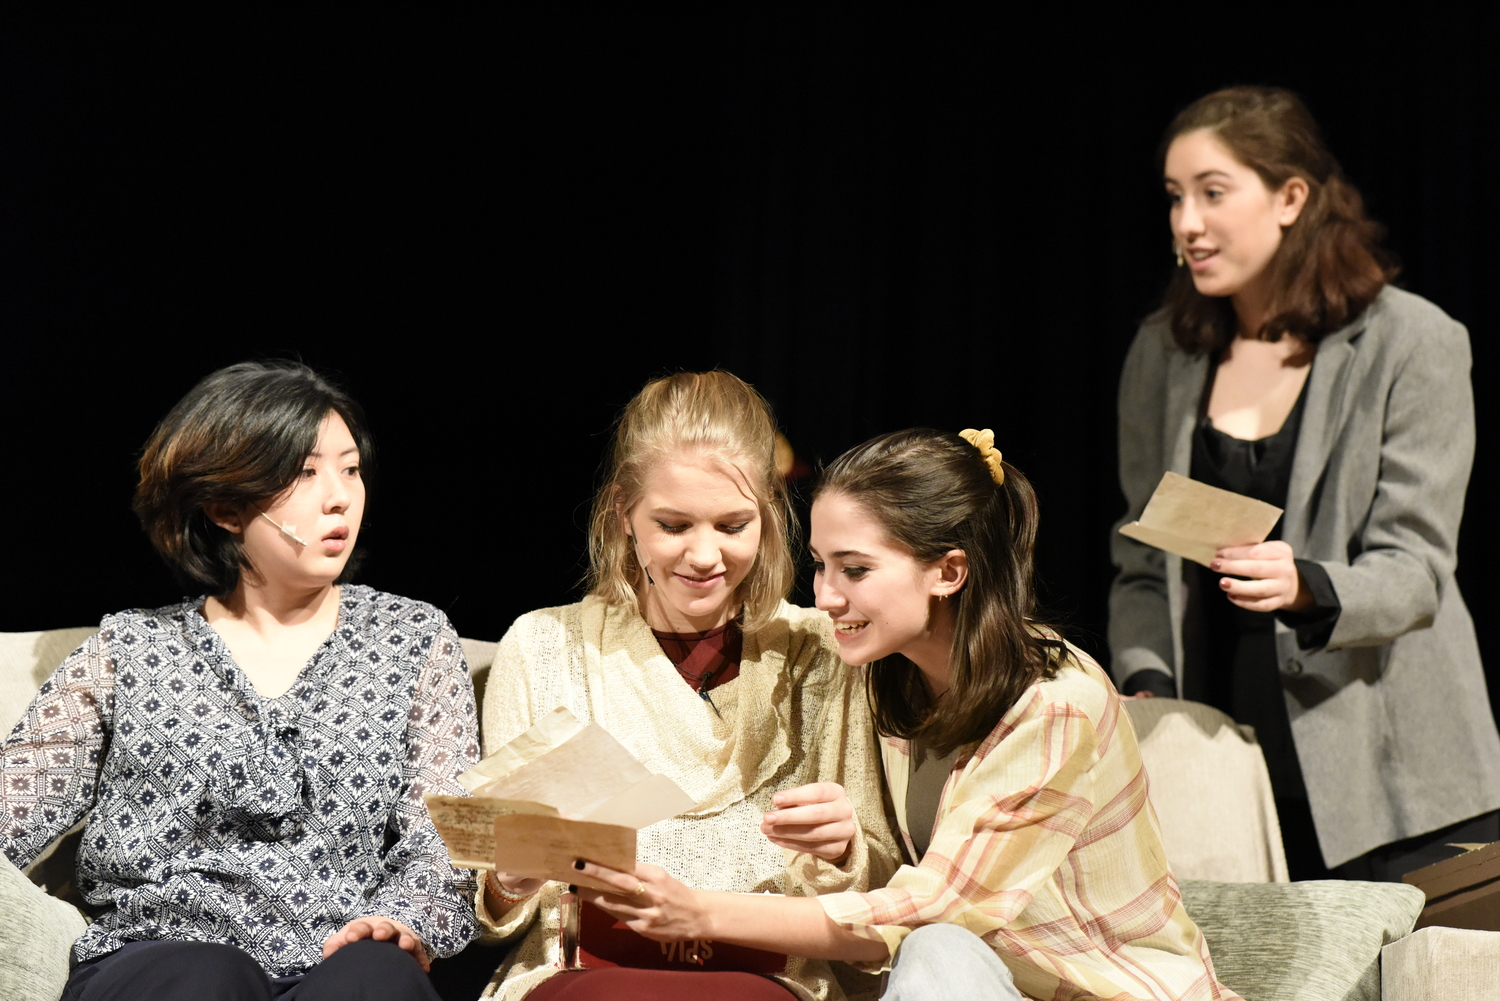 Sala, played by Jing Mae Wang '20, shows her family (left to right: Candace McQuaig '20, Caroline Gallagher '19, and Ava Vercesi '19) her old letters.